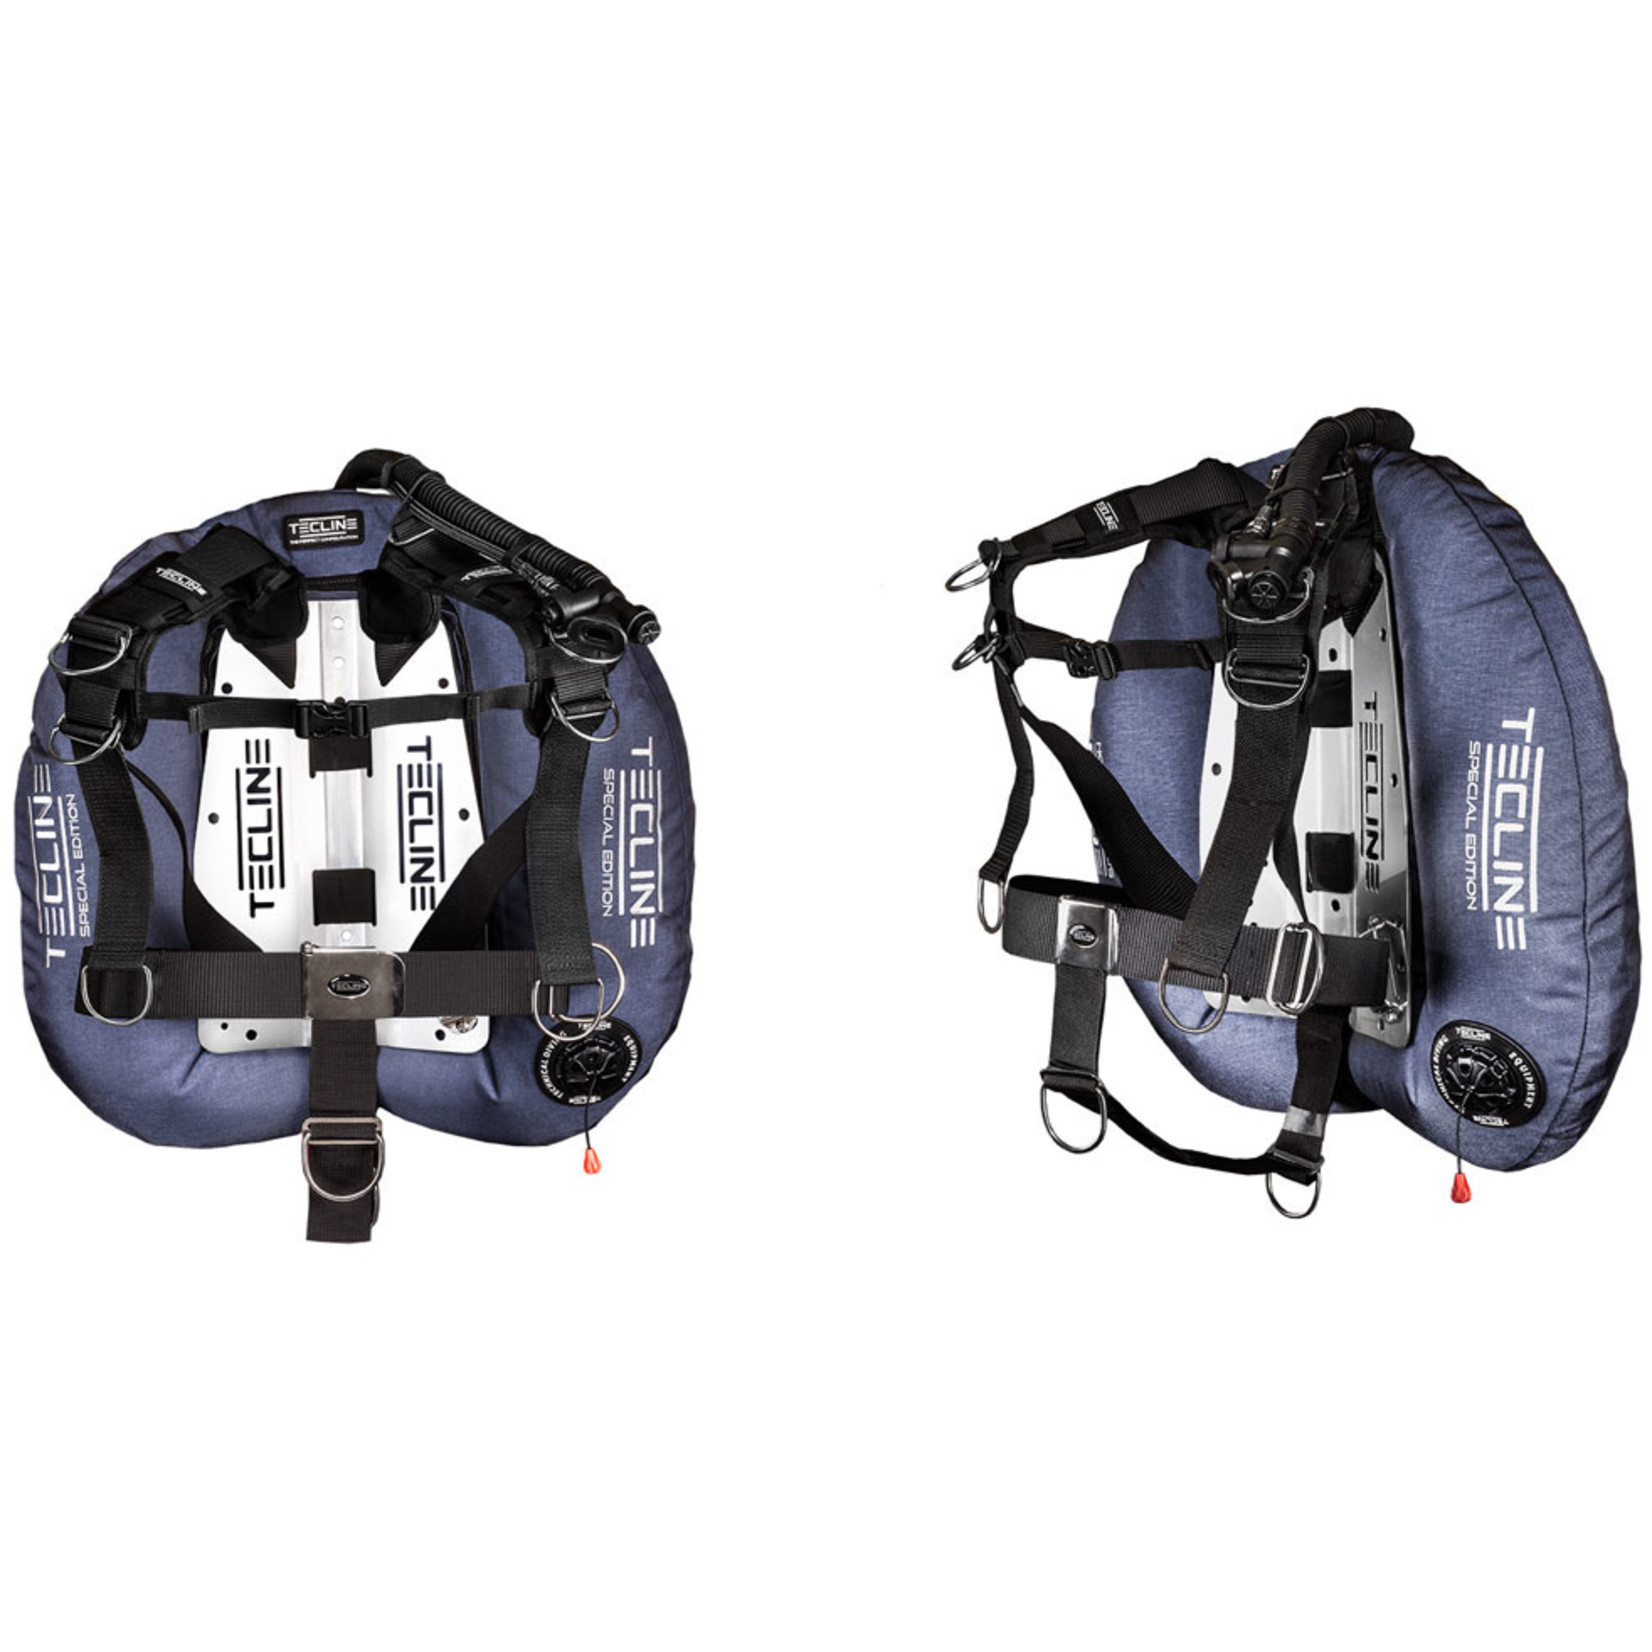 Tecline Donut 22 Specal Edition blue, with Comfort harness  & BP